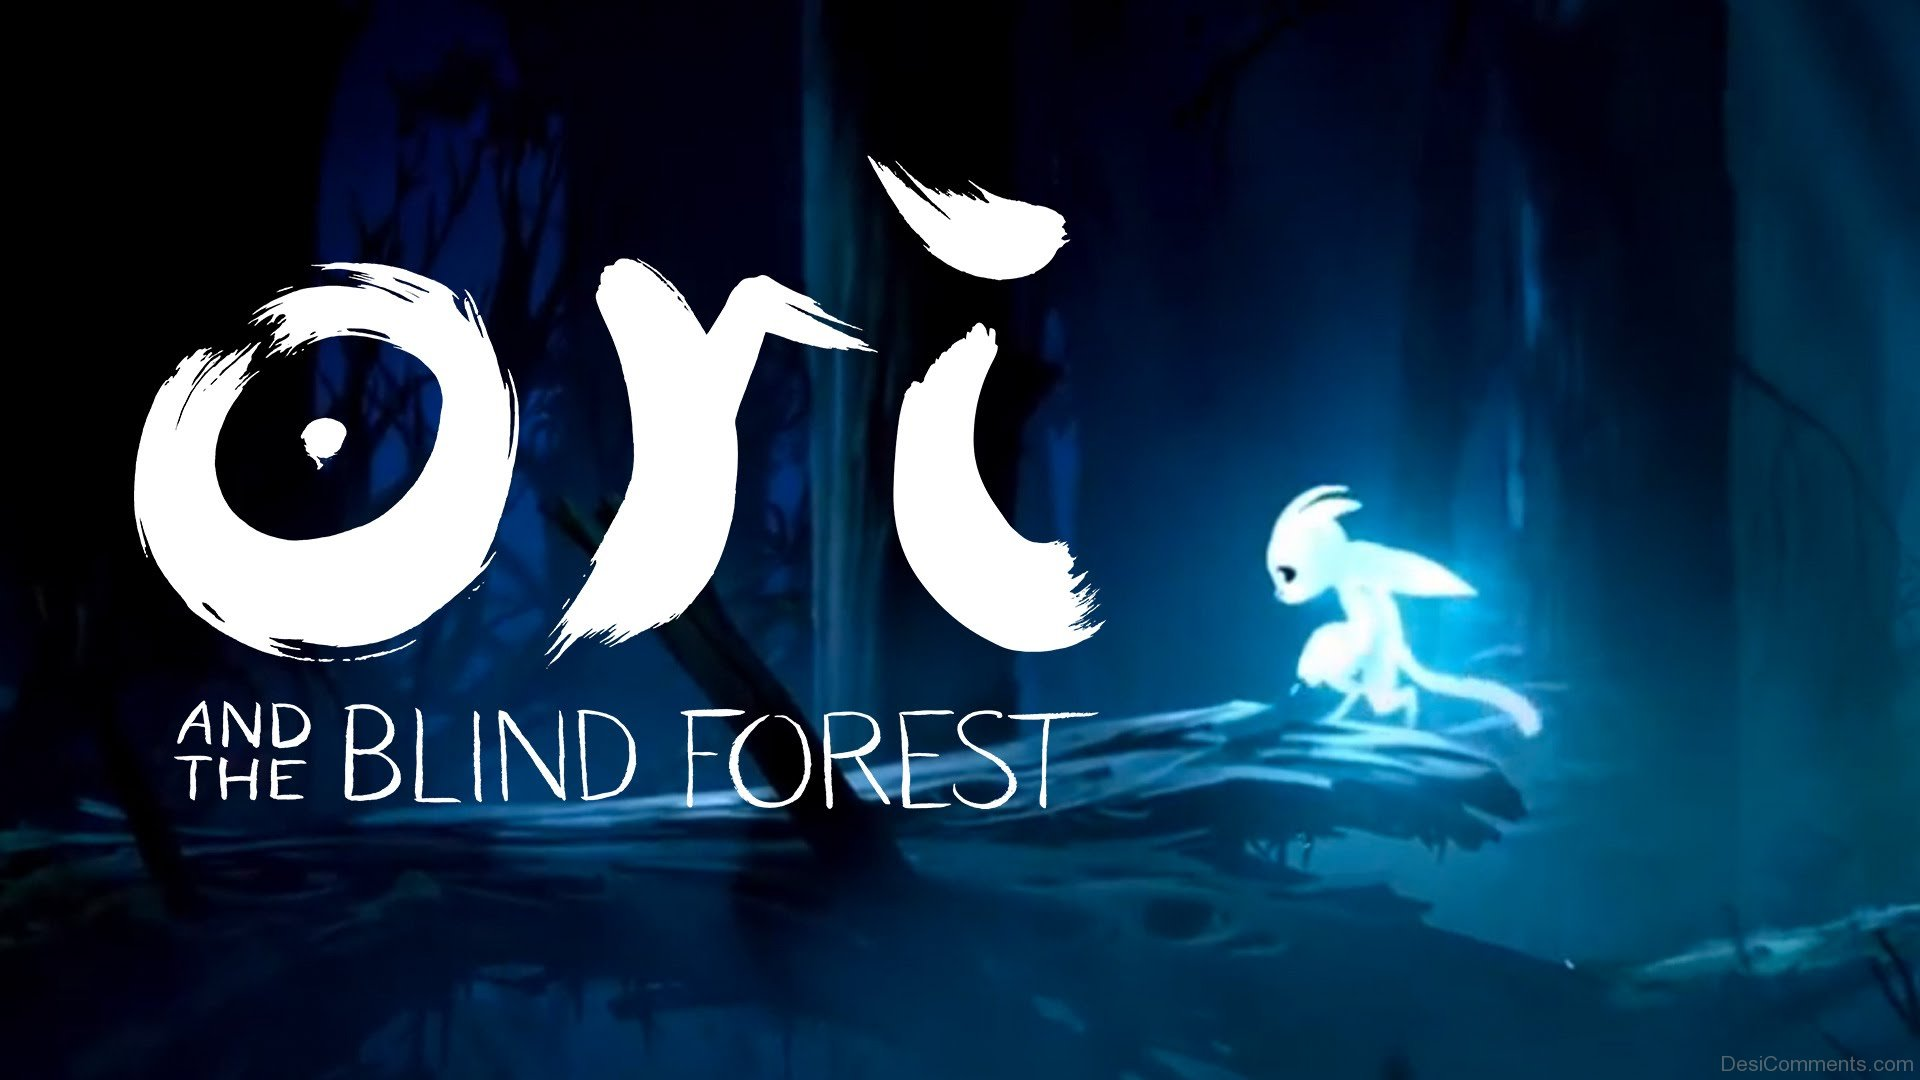 Ori And The Blind Forest Game Poster - DesiComments.com